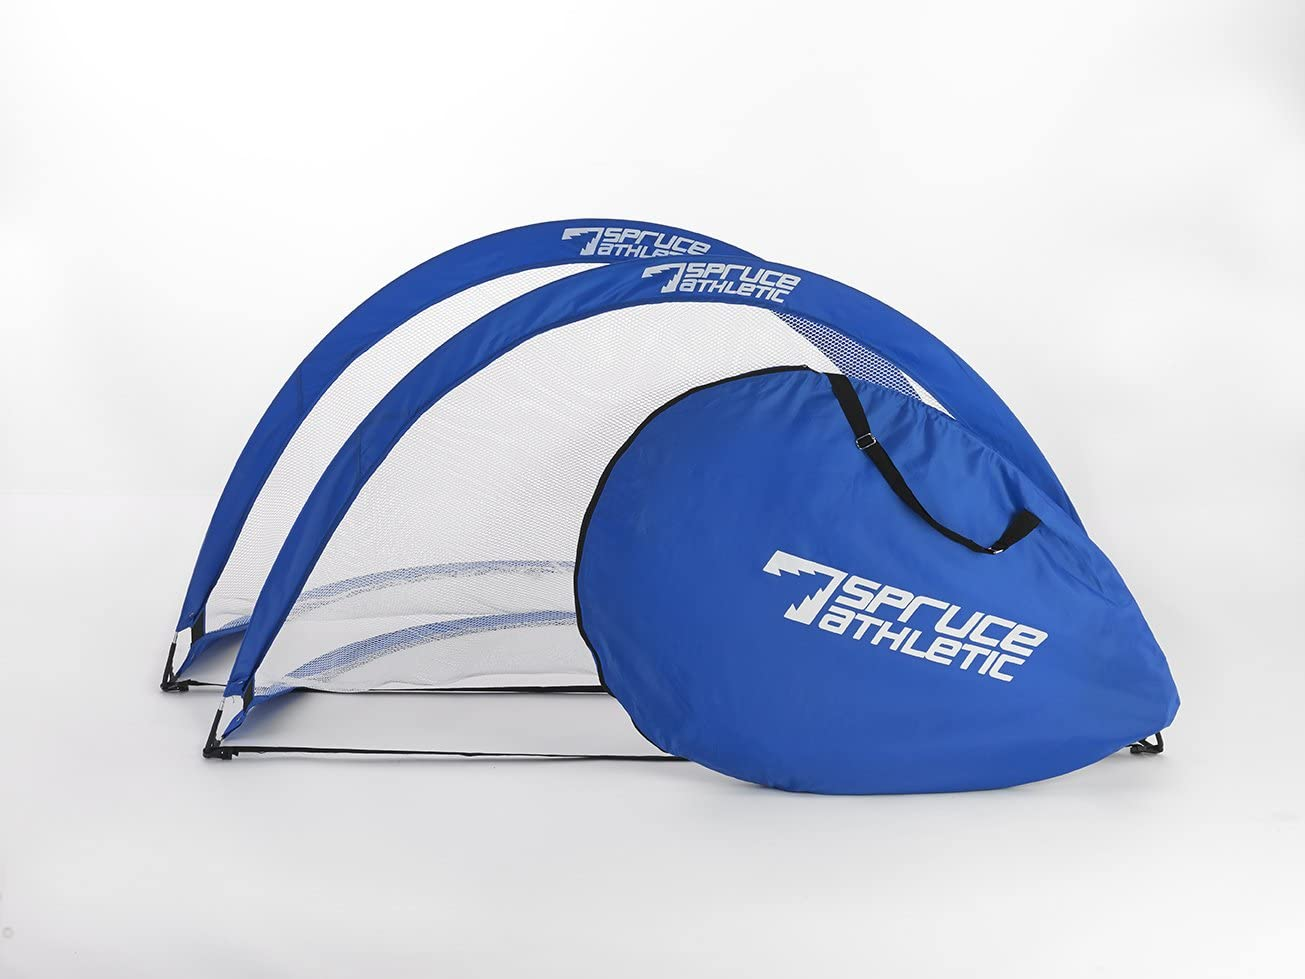 1 Pair of Competition Cheap SALE Start Quality Popular brand in the world 6ft Free with Soccer Pop-up Goals